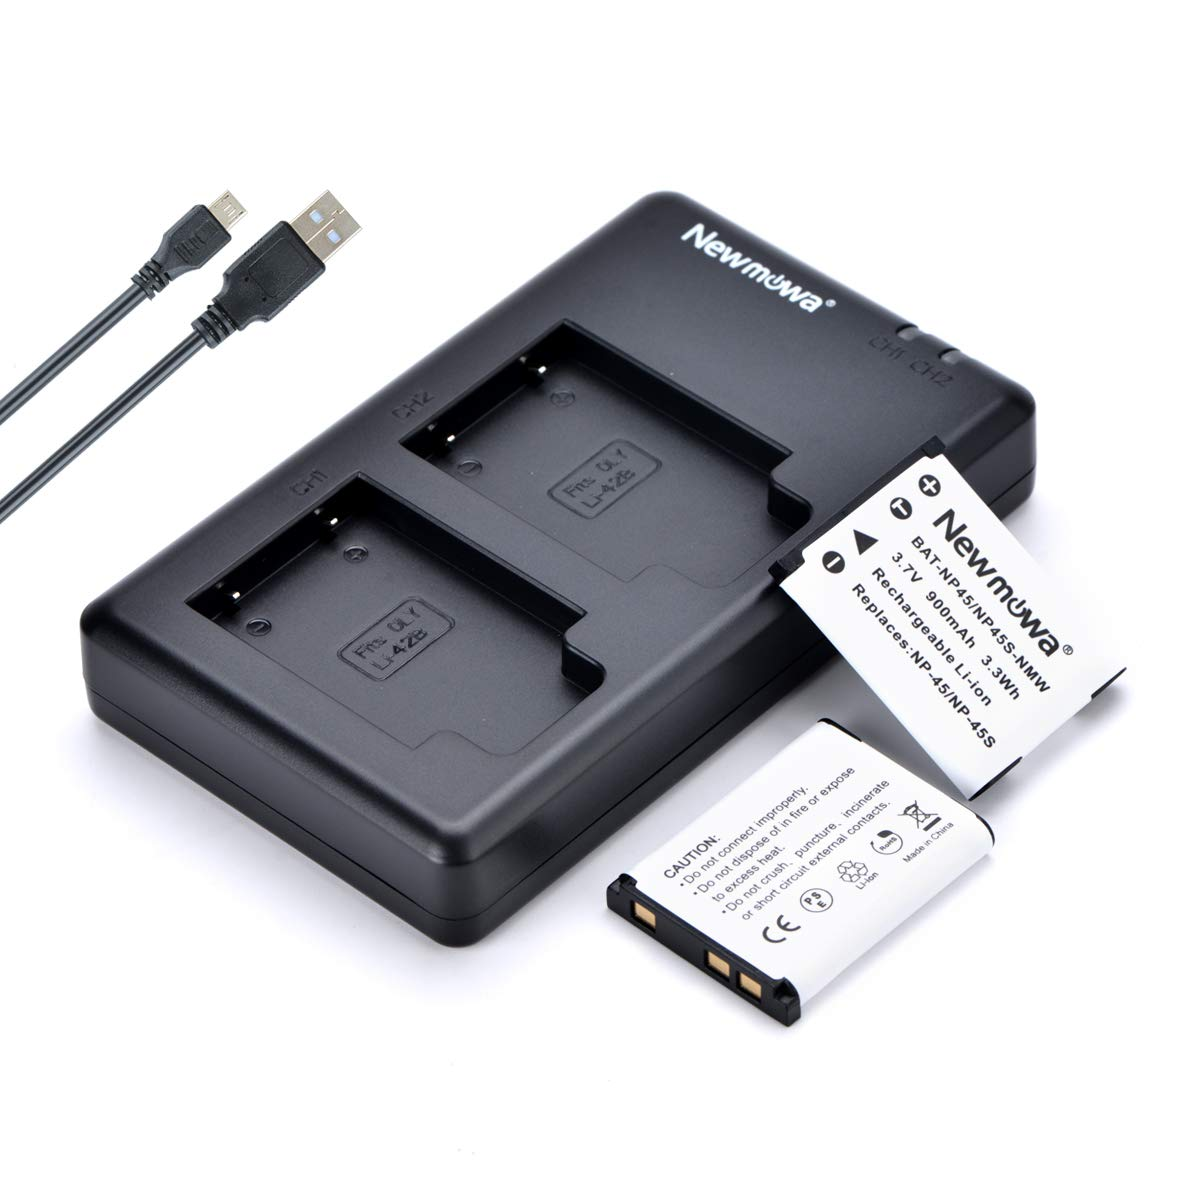 Newmowa NP-45 NP-45S Replacment Battery (2 Pack) and Dual USB Charger Kit for Fujifilm INSTAX Mini 90 and FinePix XP50 XP60 XP70 XP80 XP90 XP120 XP130 XP140 T350 T360 T400 T500 T510 T550 JX500 JX520